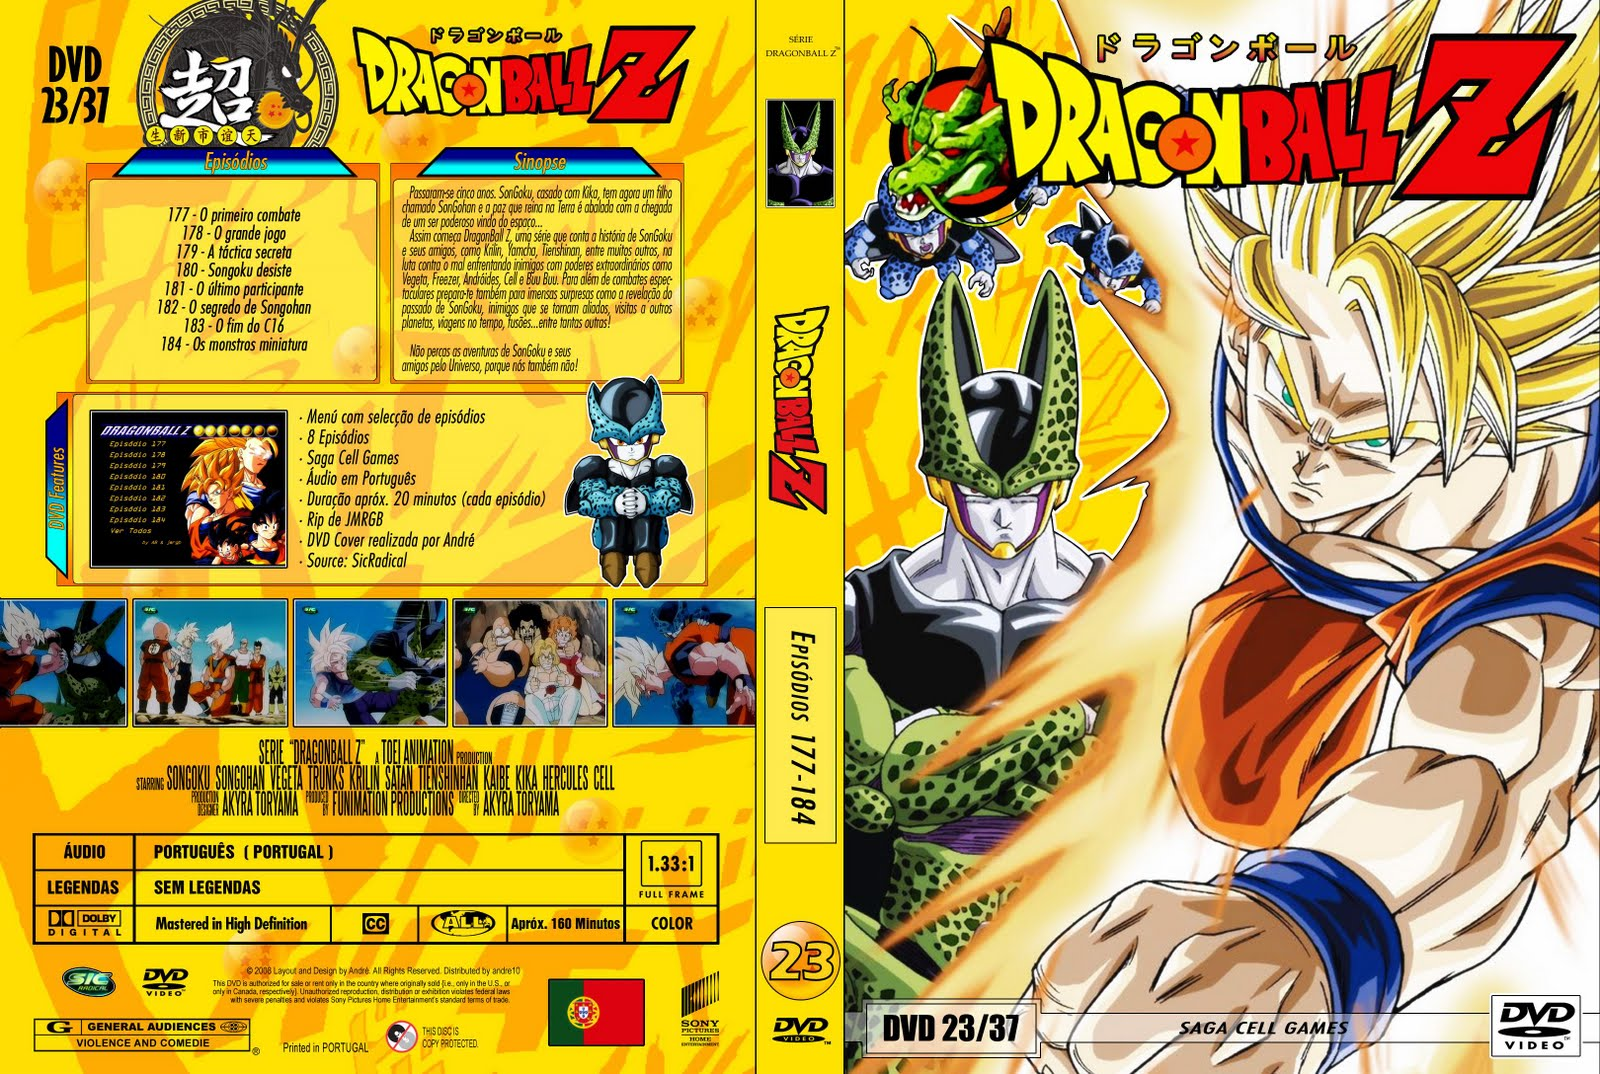 Dragon Ball Z Temporadas Completas dragonballz vol 23